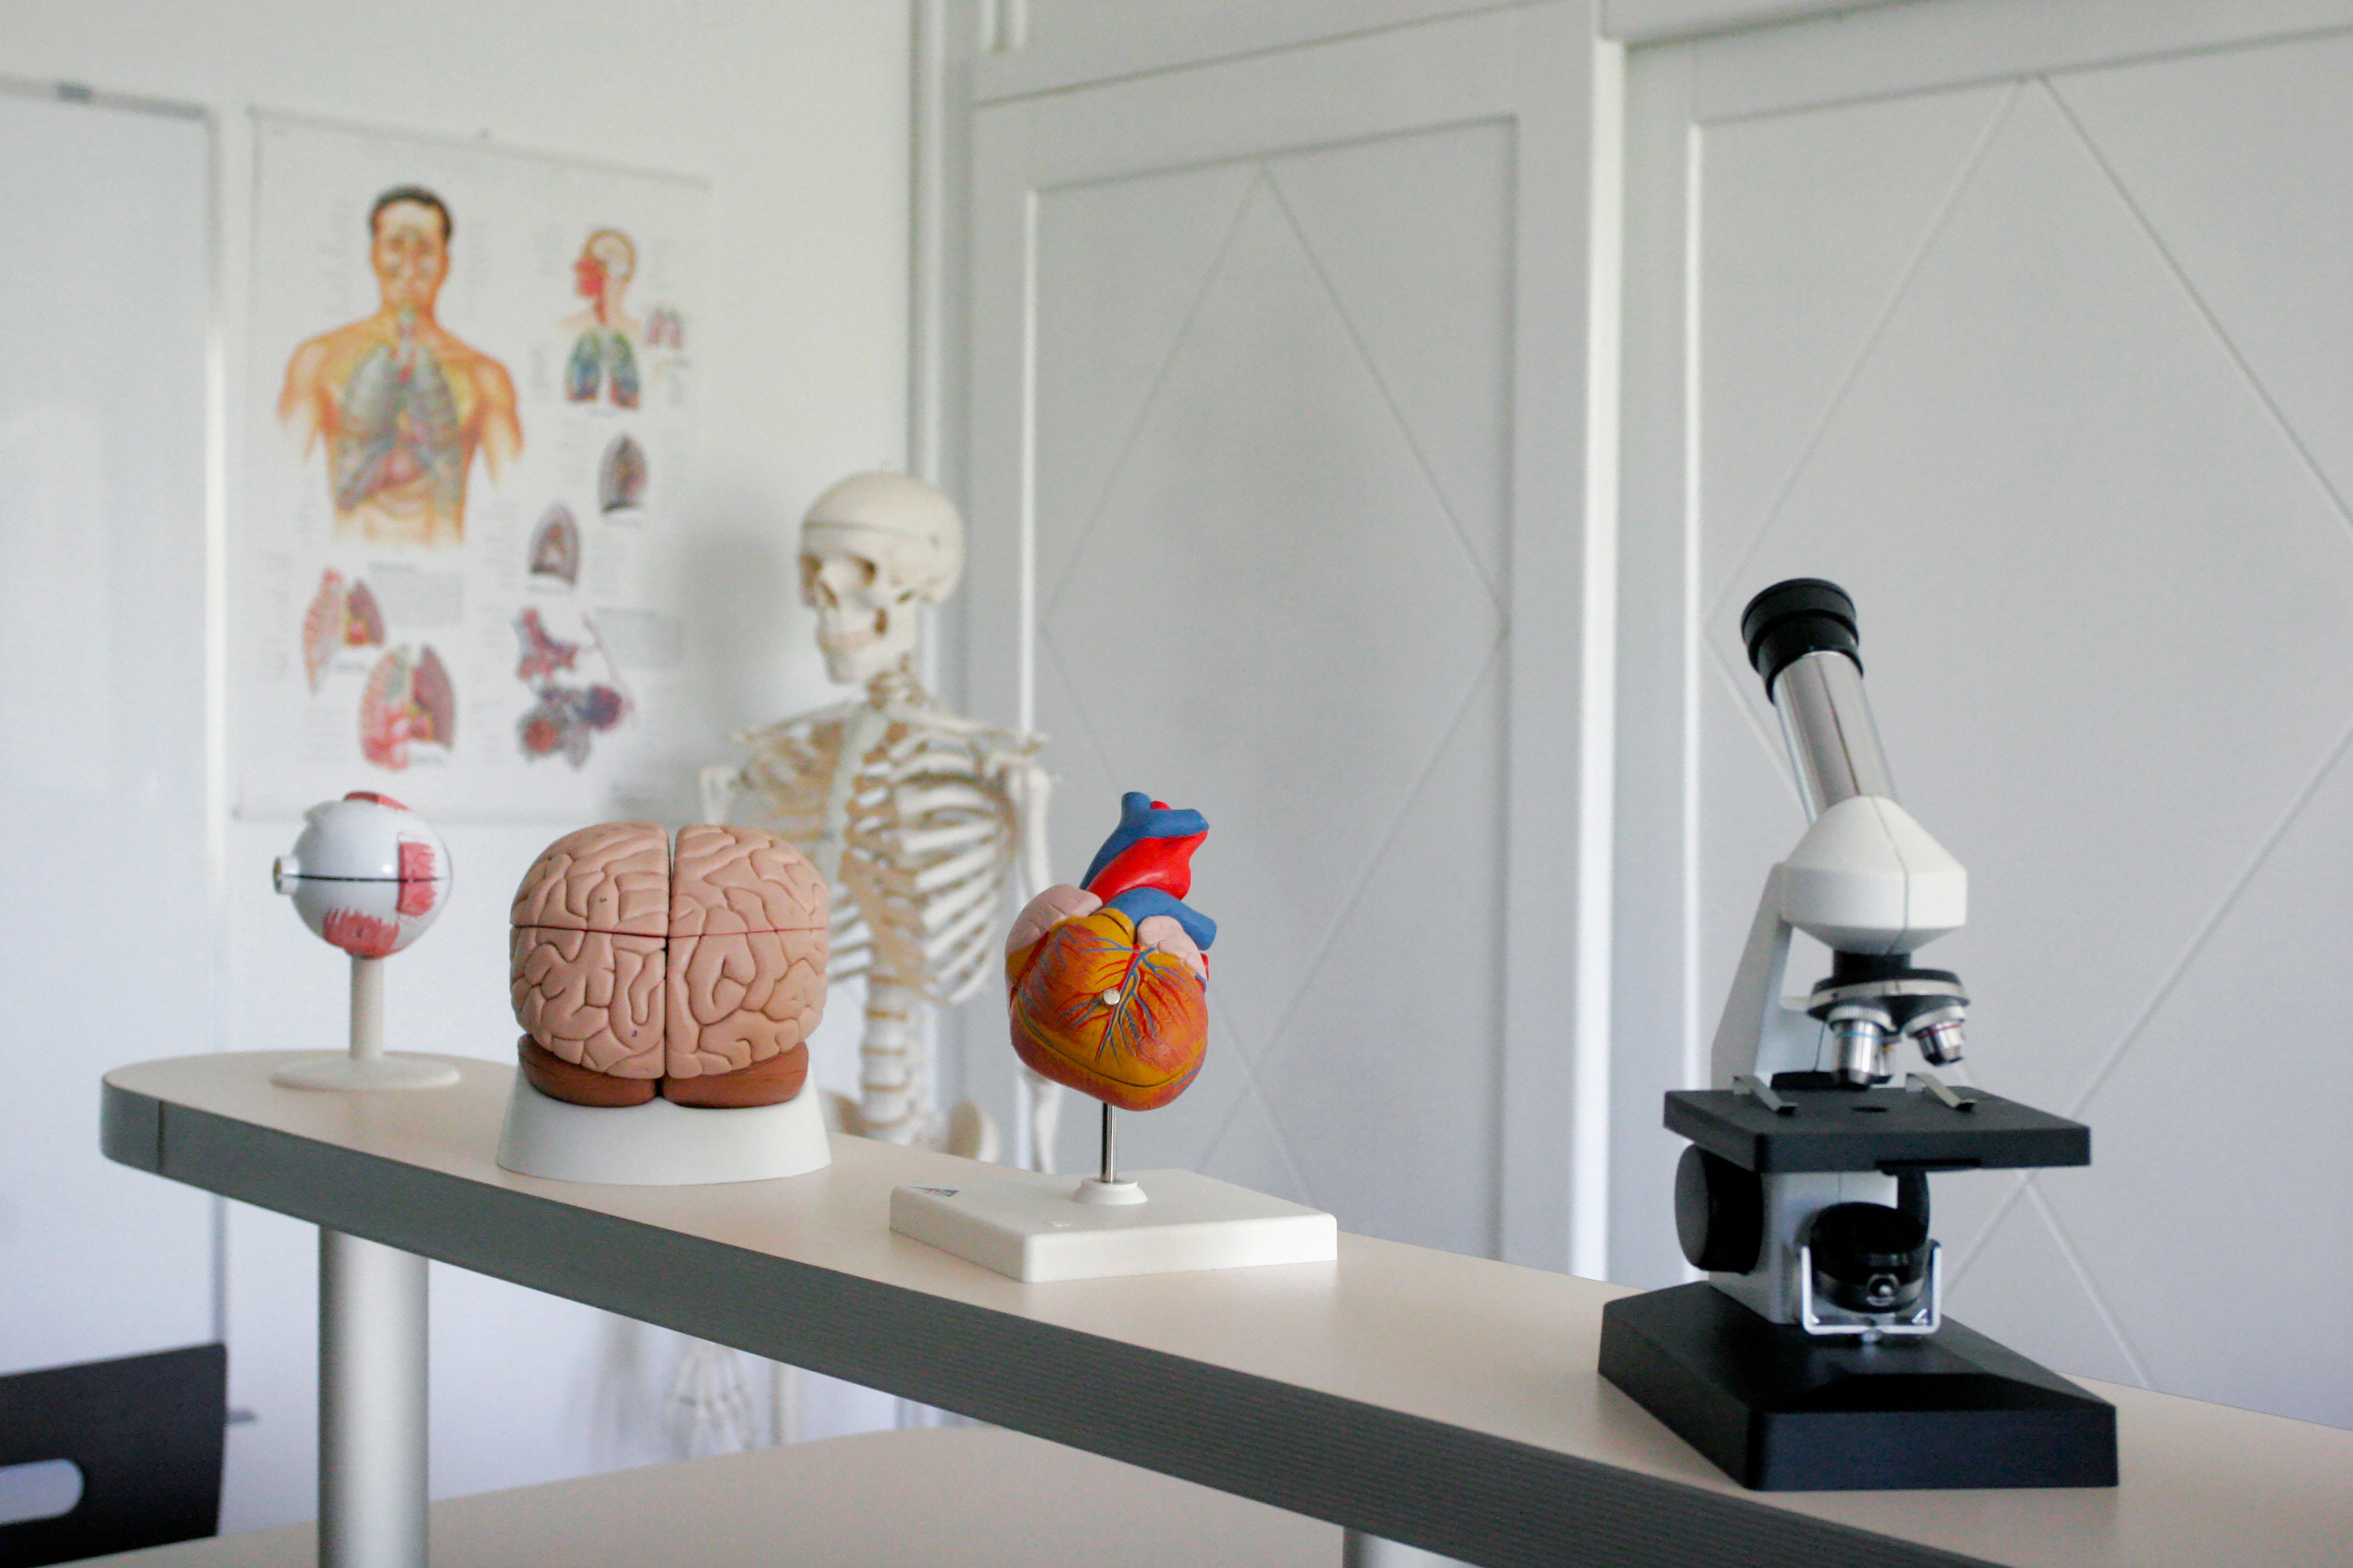 biology classroom with a microscope and synthetic human brain and heart